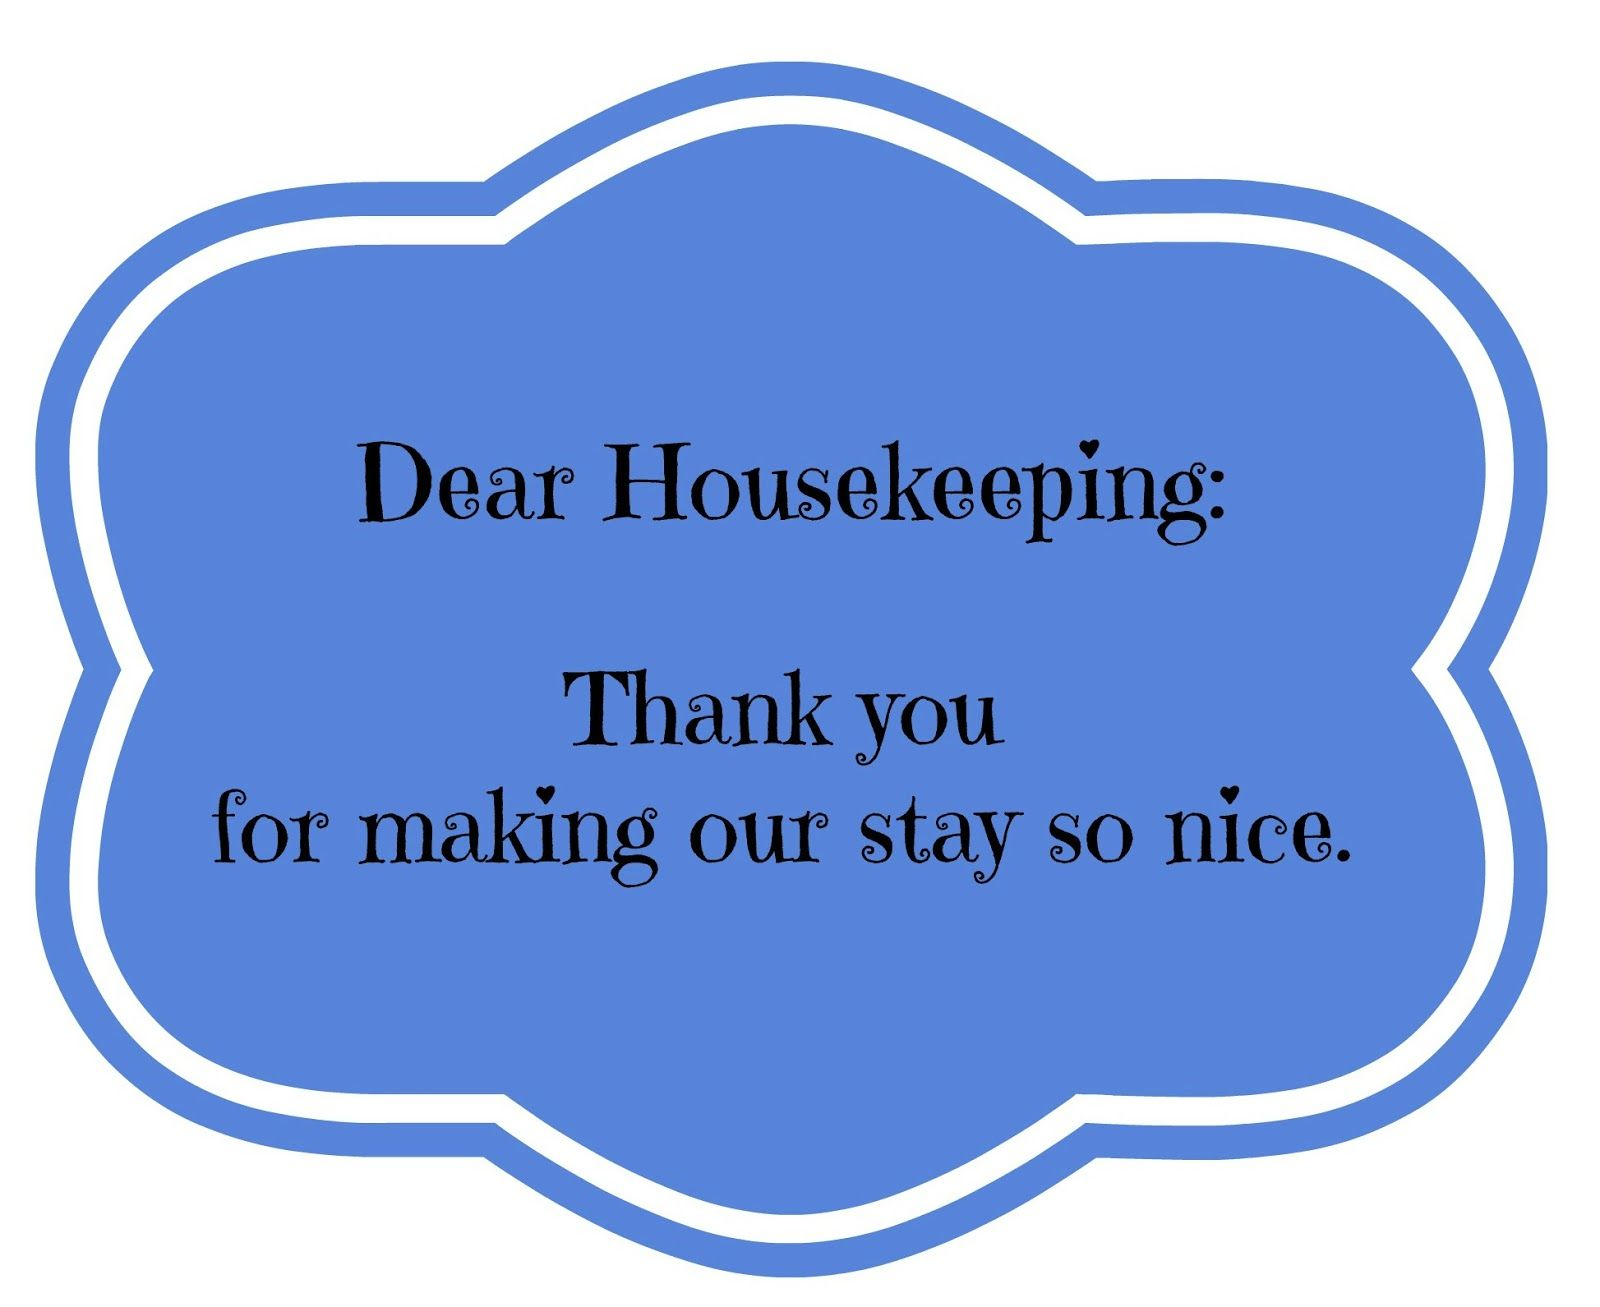 Printable Thank You Notes To Give Hotel Housekeeping With A Tip When Travel